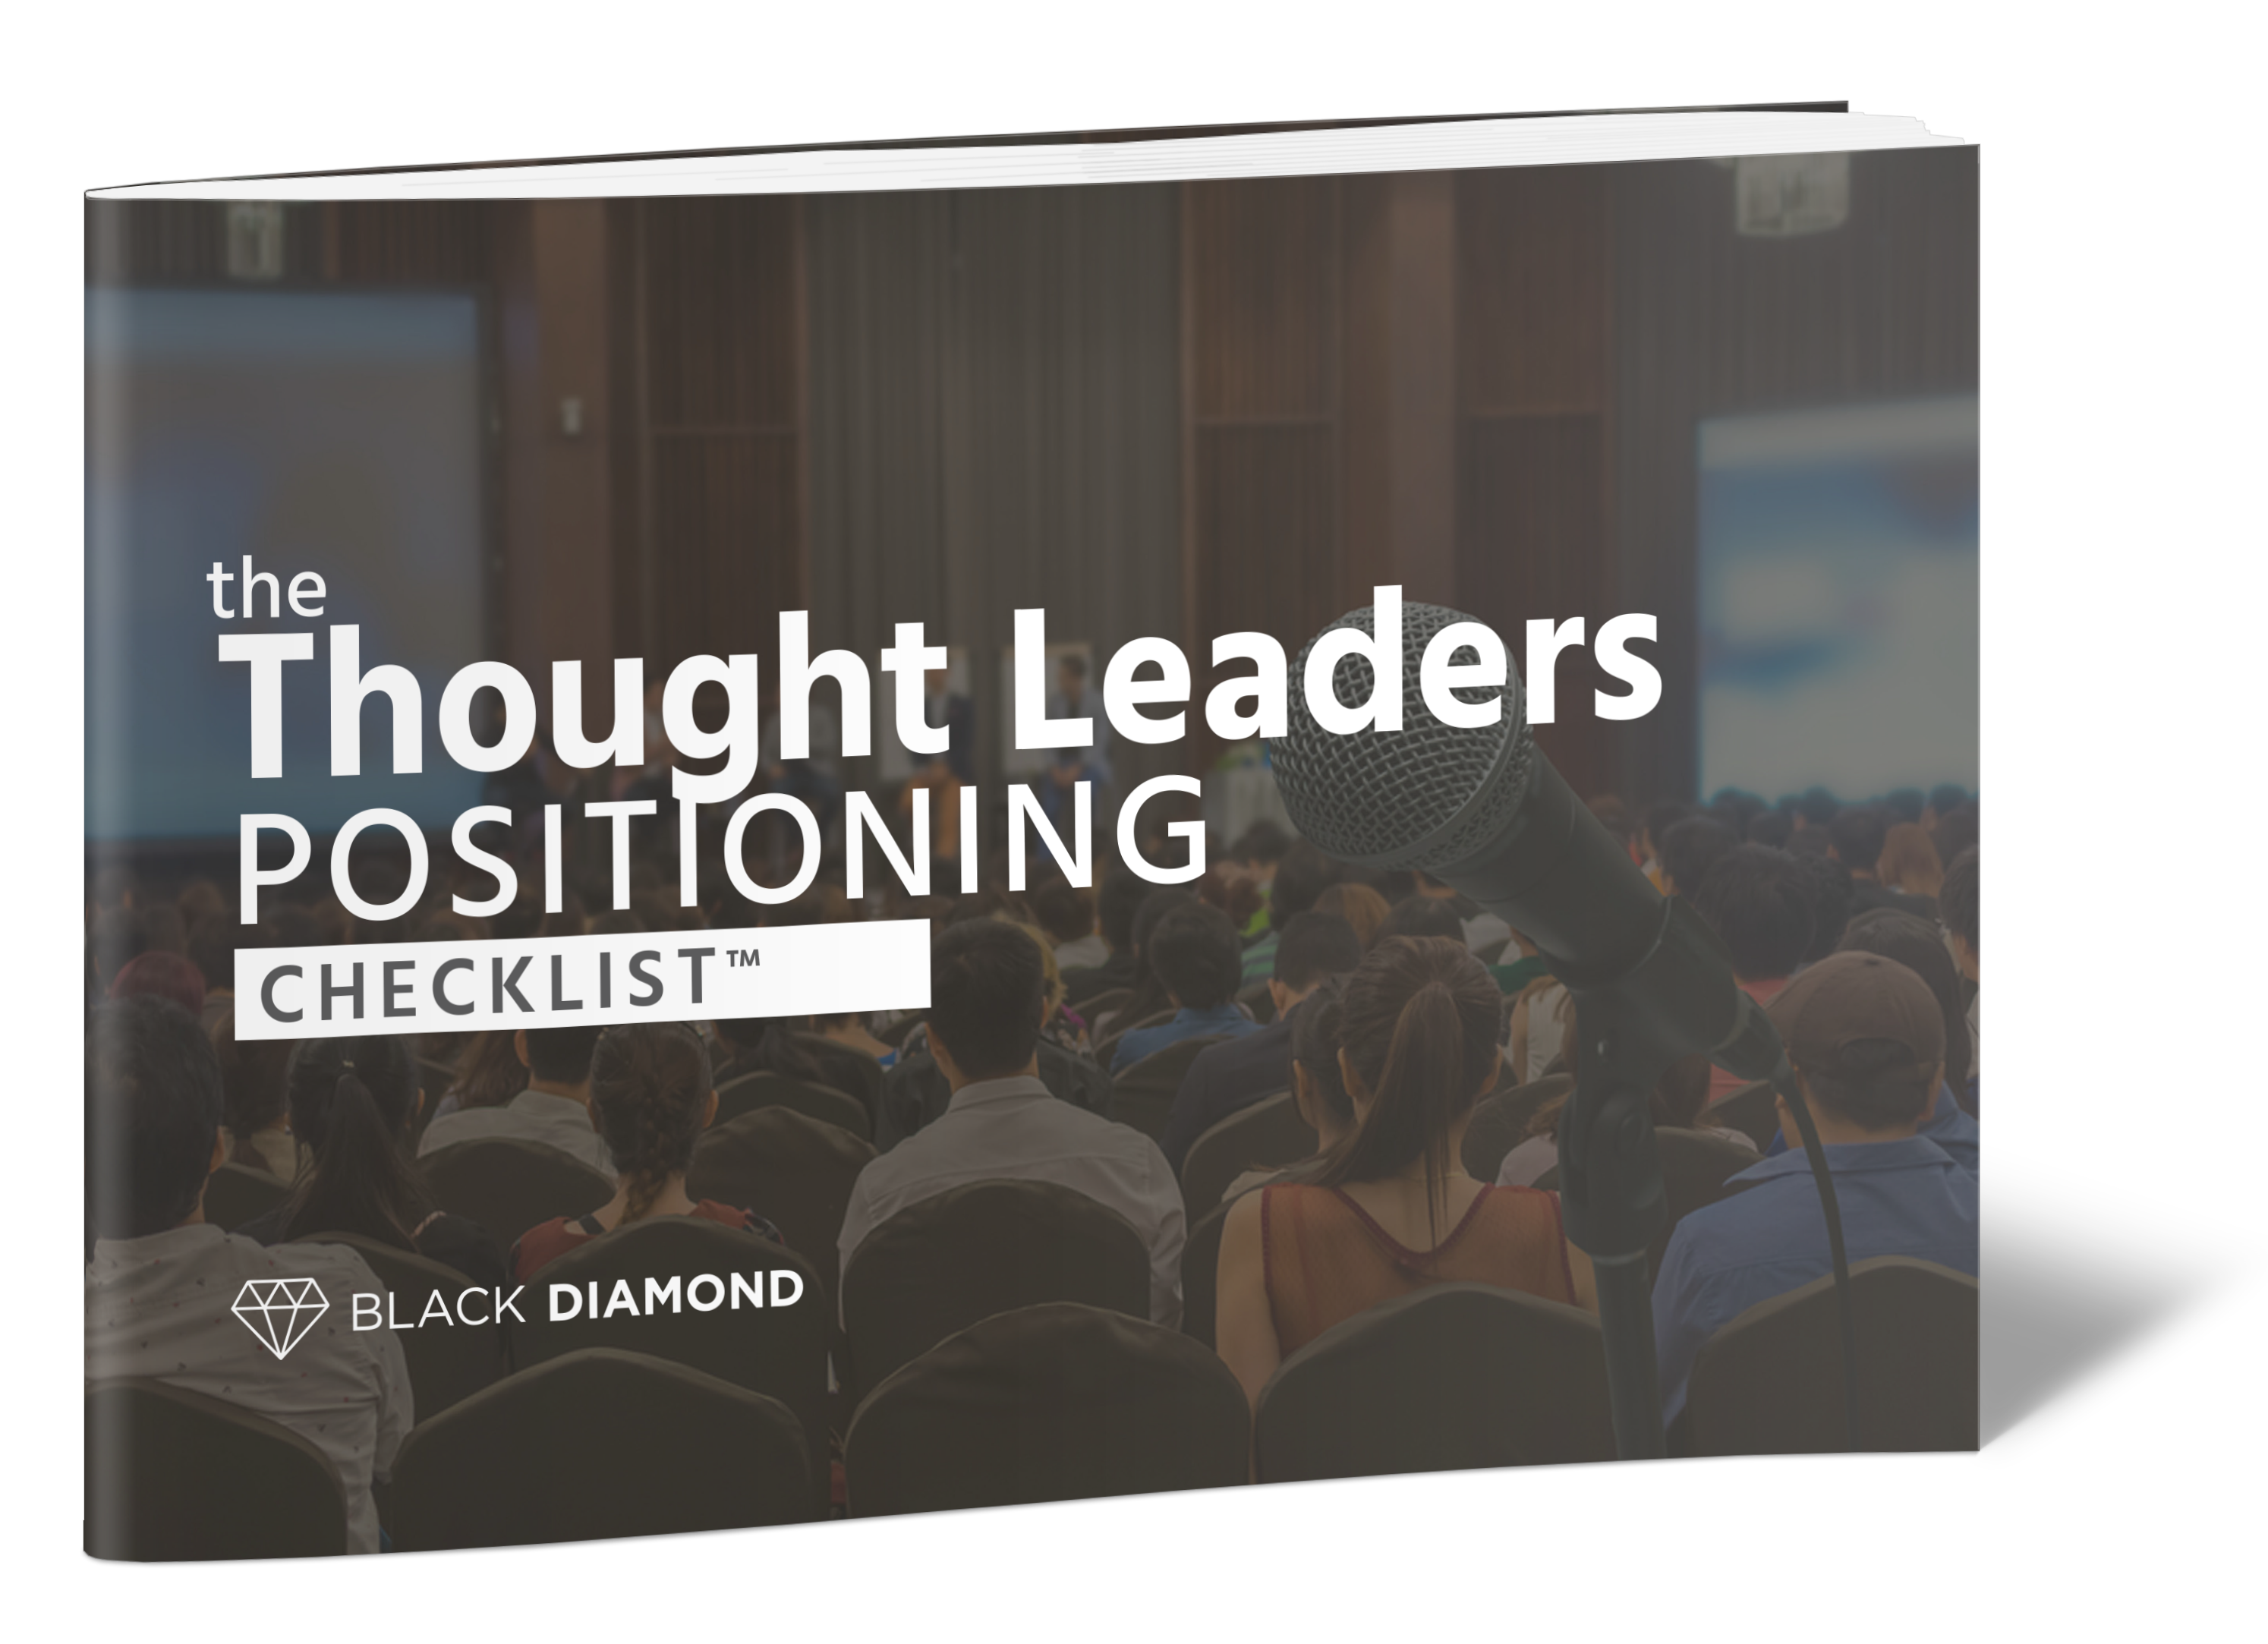 The Thought Leaders Positioning Checklist